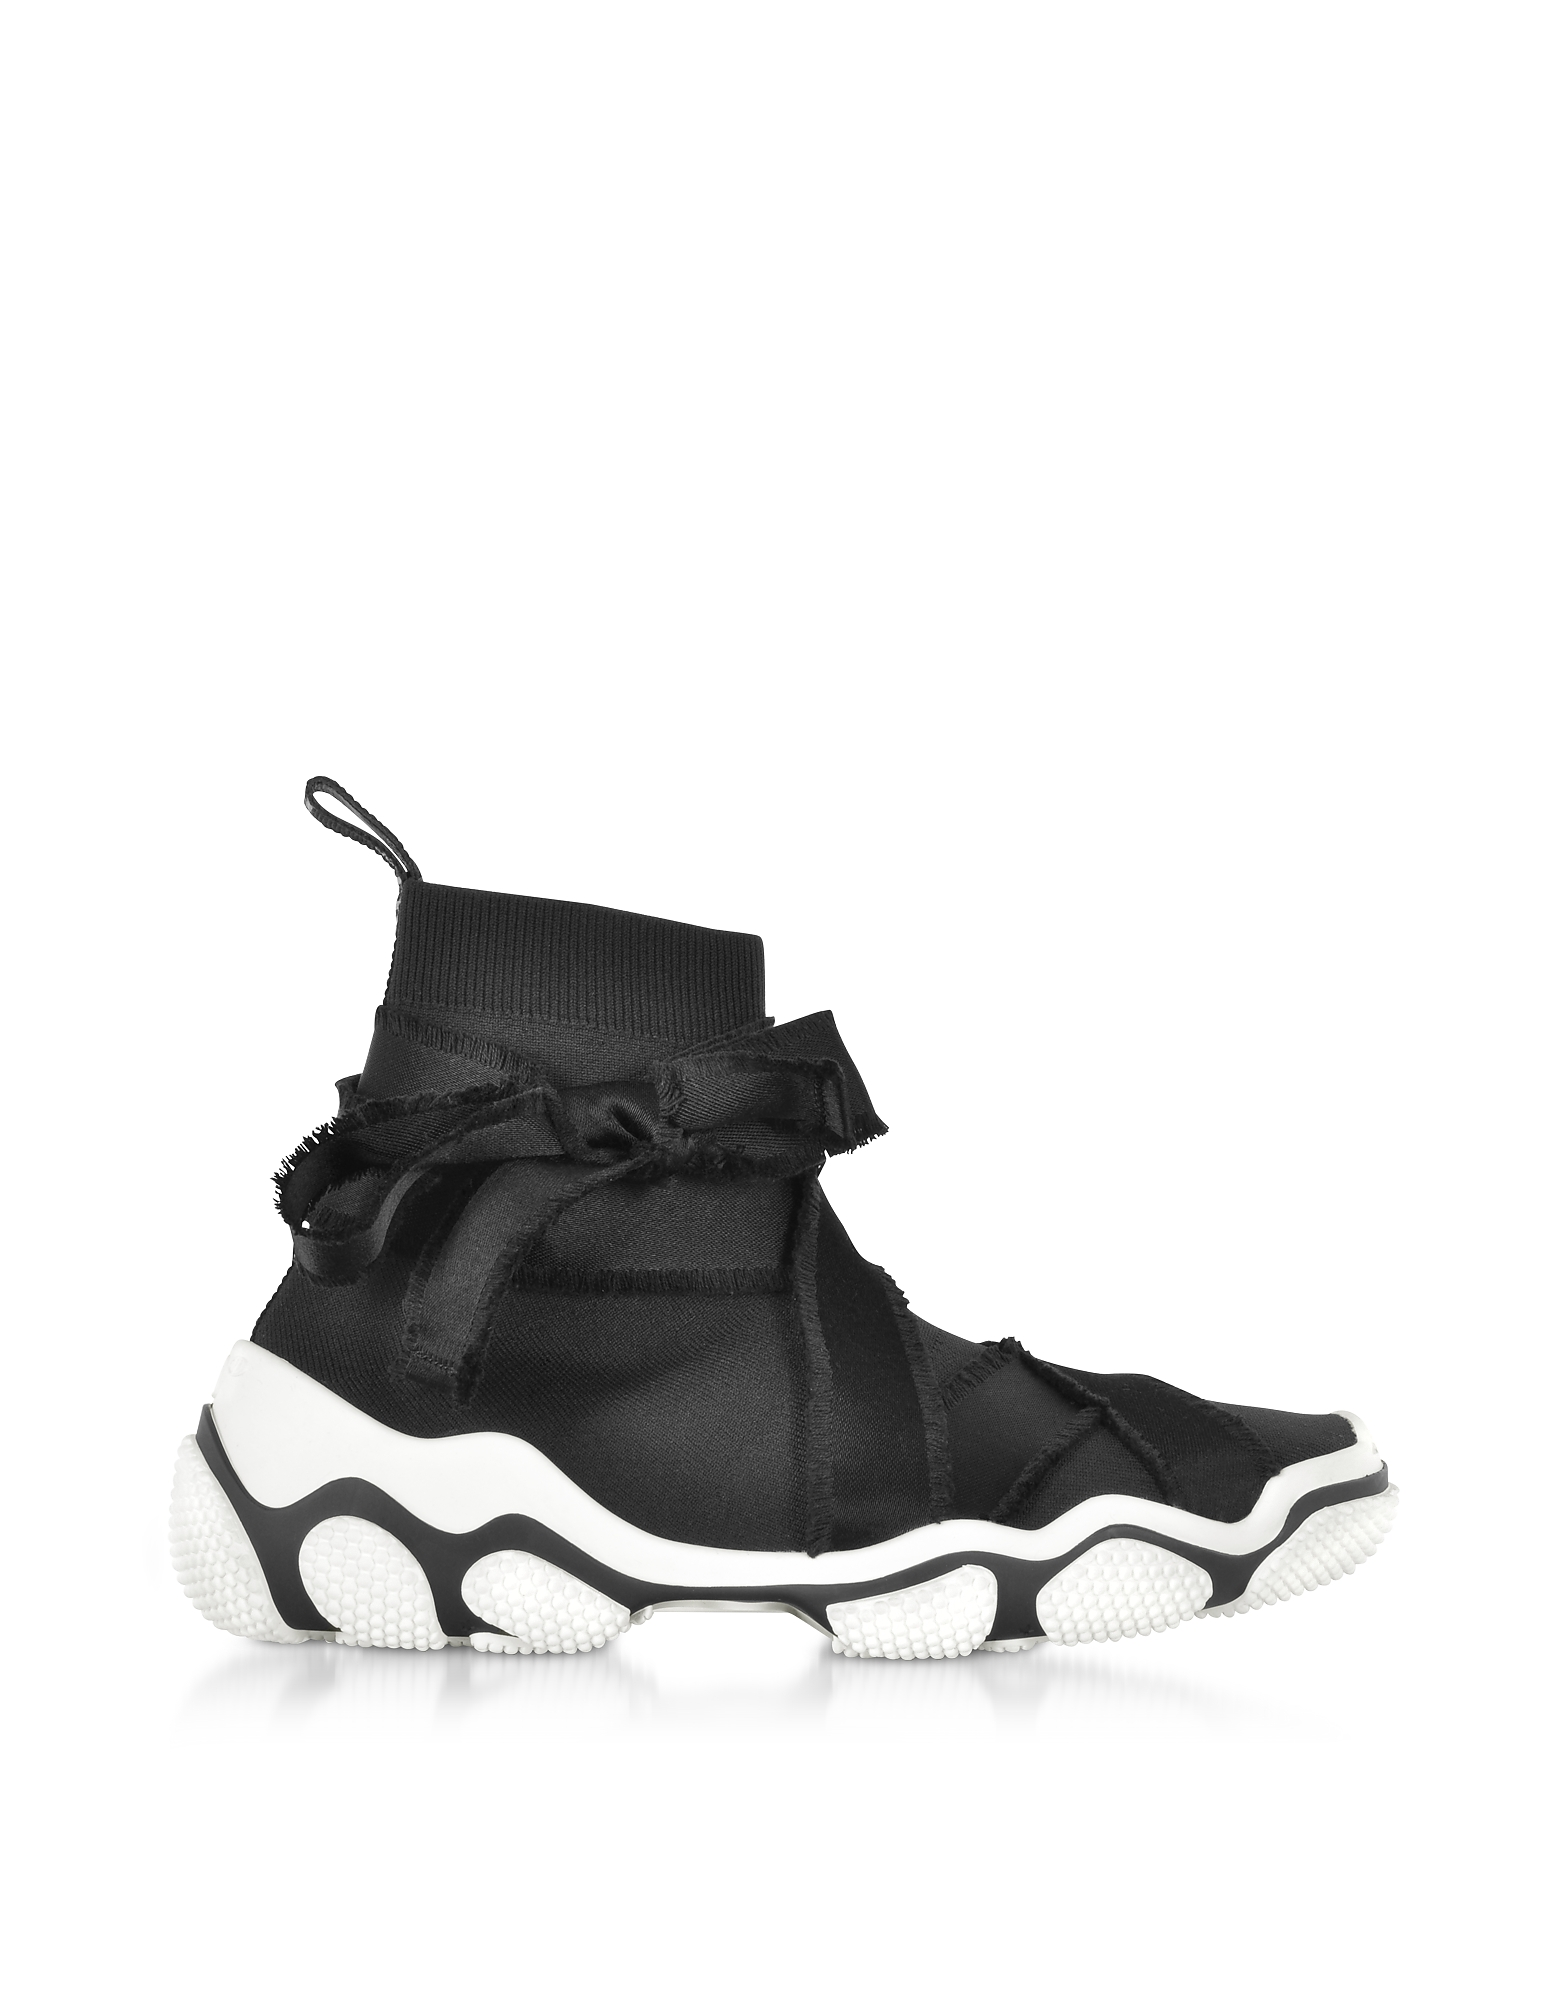 RED Valentino Shoes, Black Nylon High Top Sneakers w/Bow